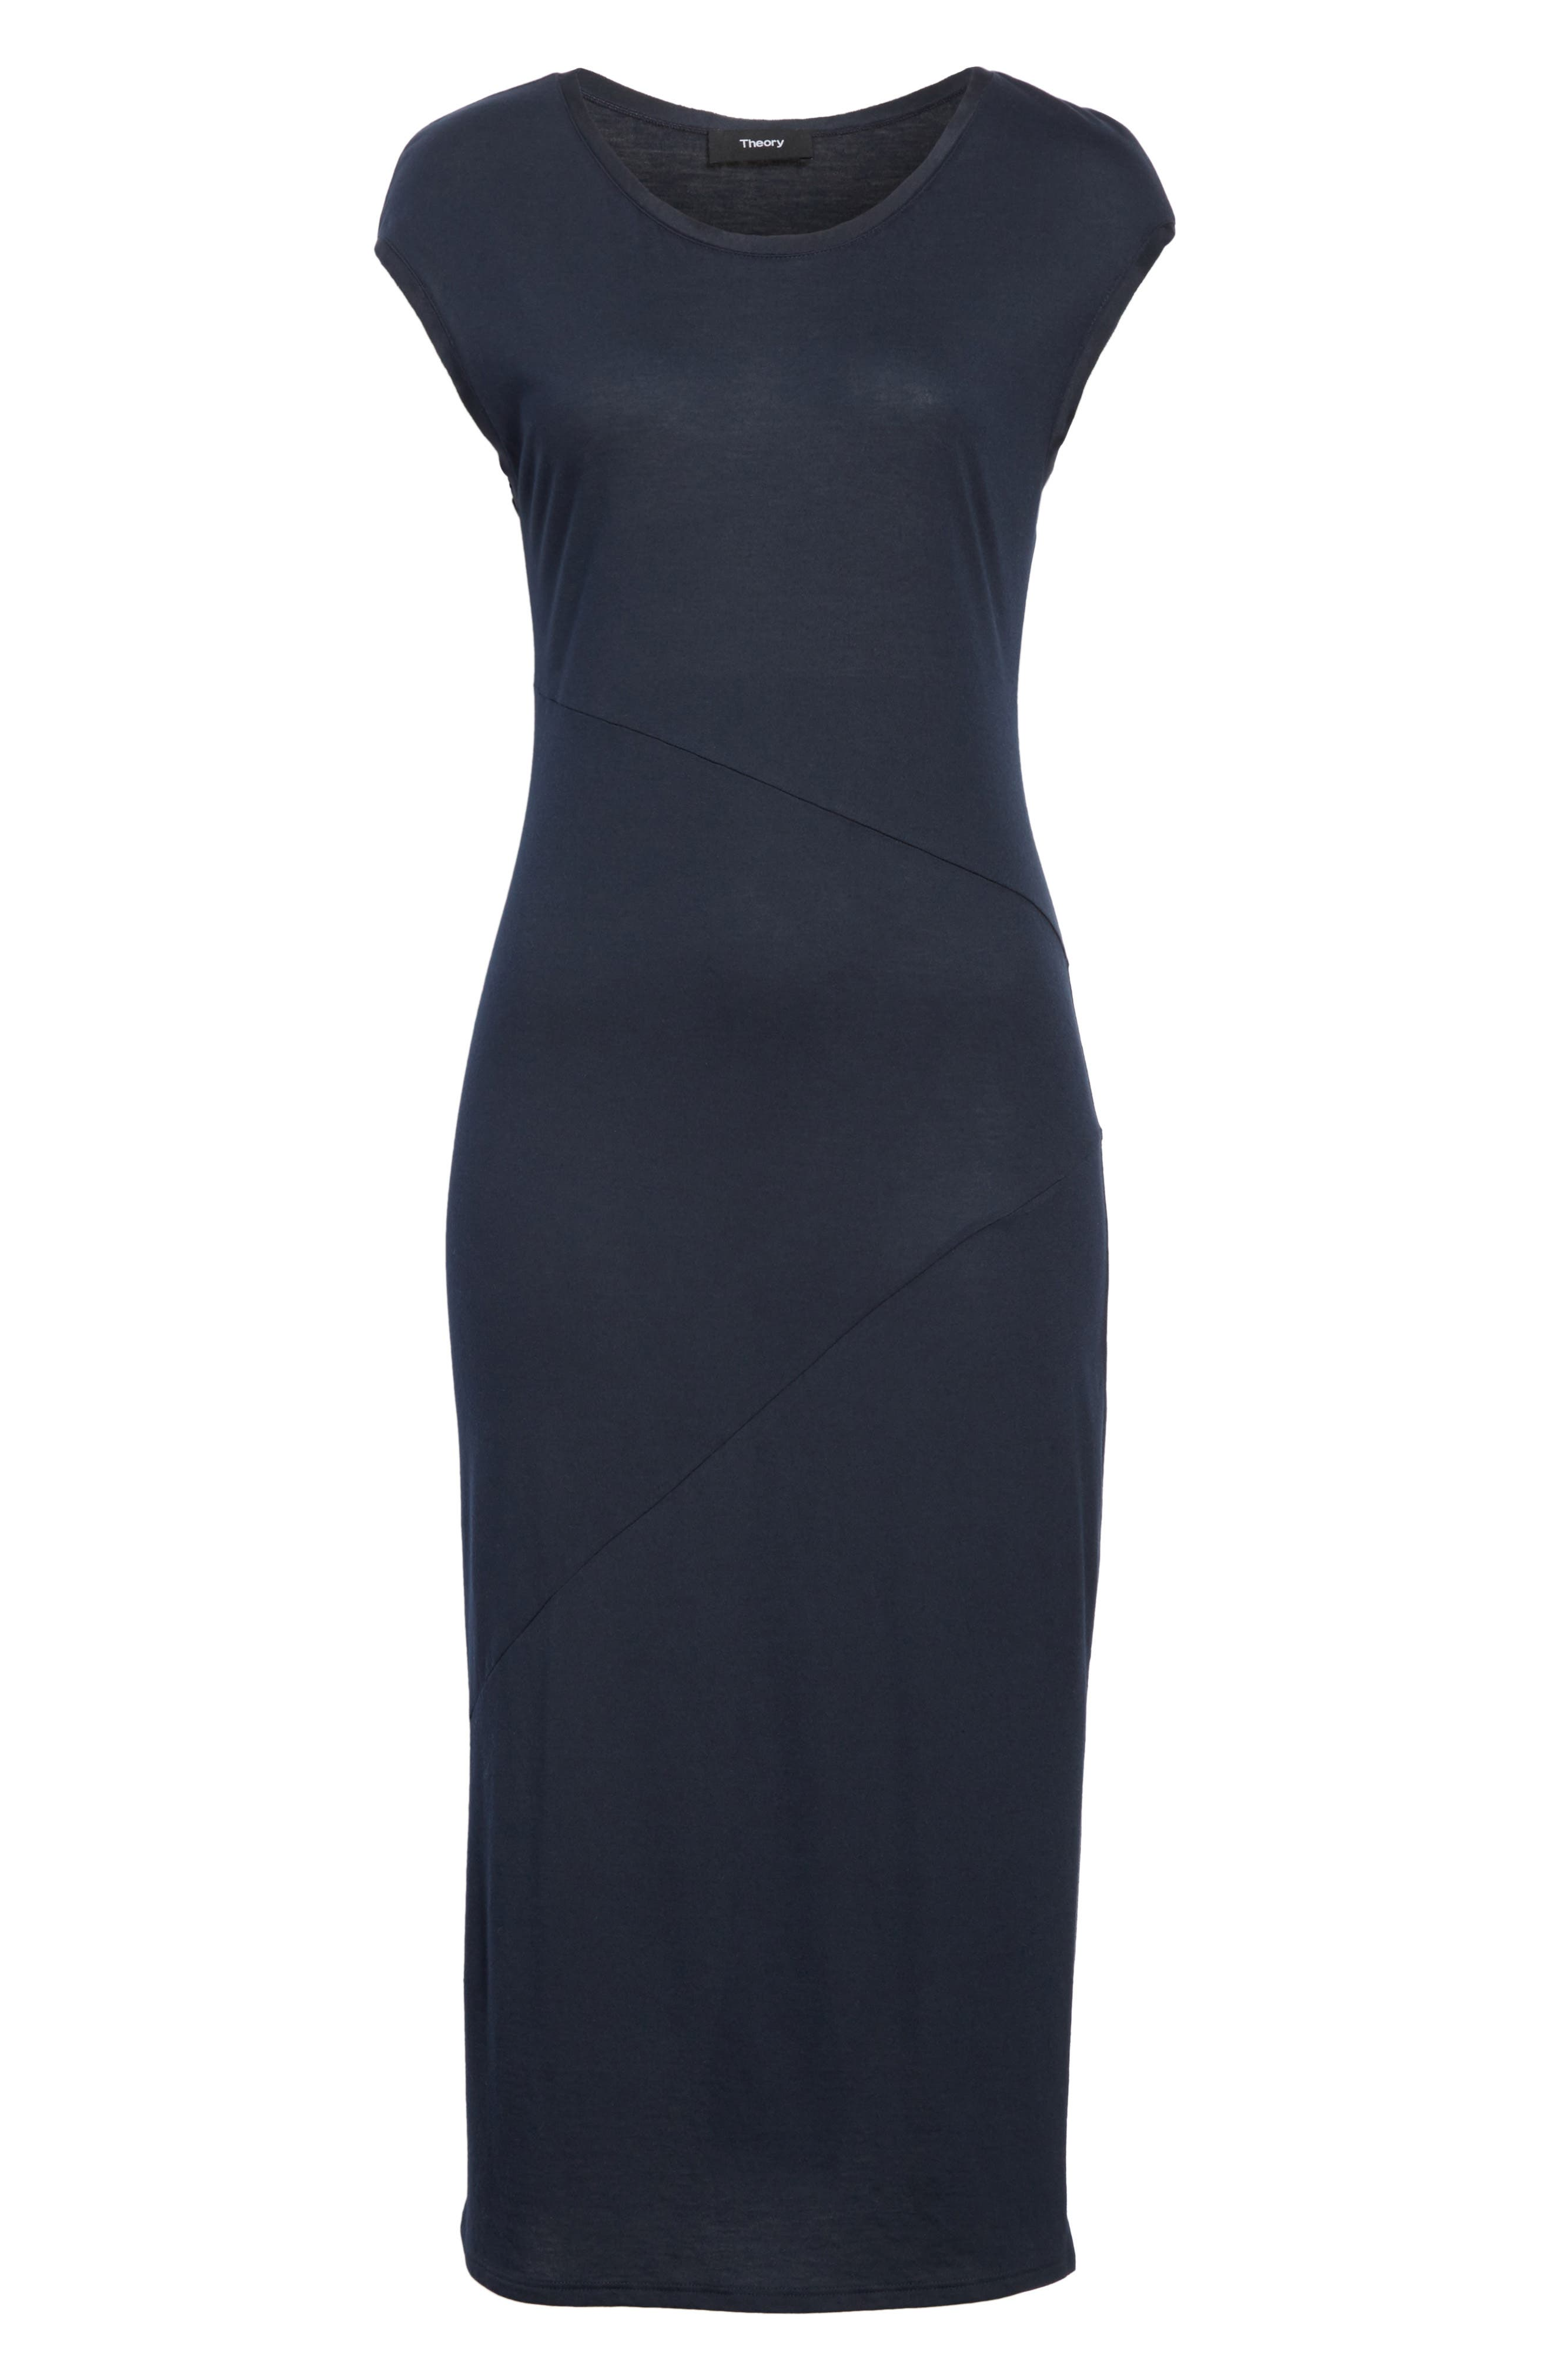 Plume Seamed Cotton Blend Jersey Dress,                             Alternate thumbnail 6, color,                             Deep Navy